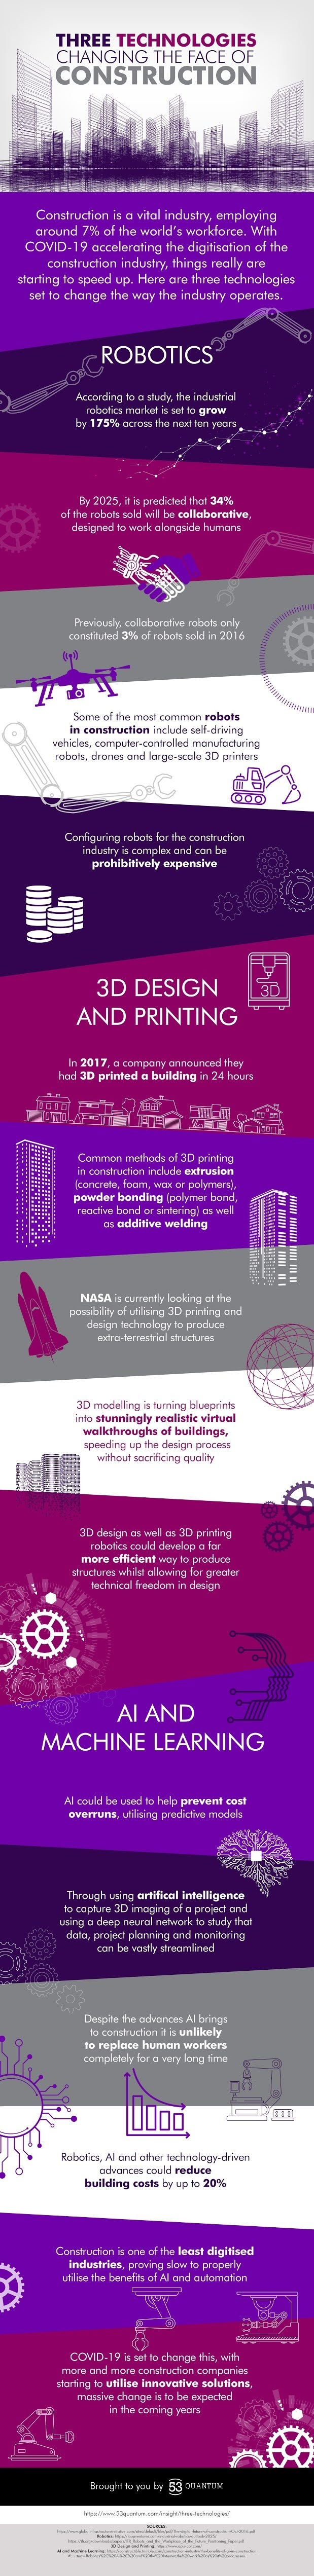 Three Technologies Changing the Face of Construction #Infographic